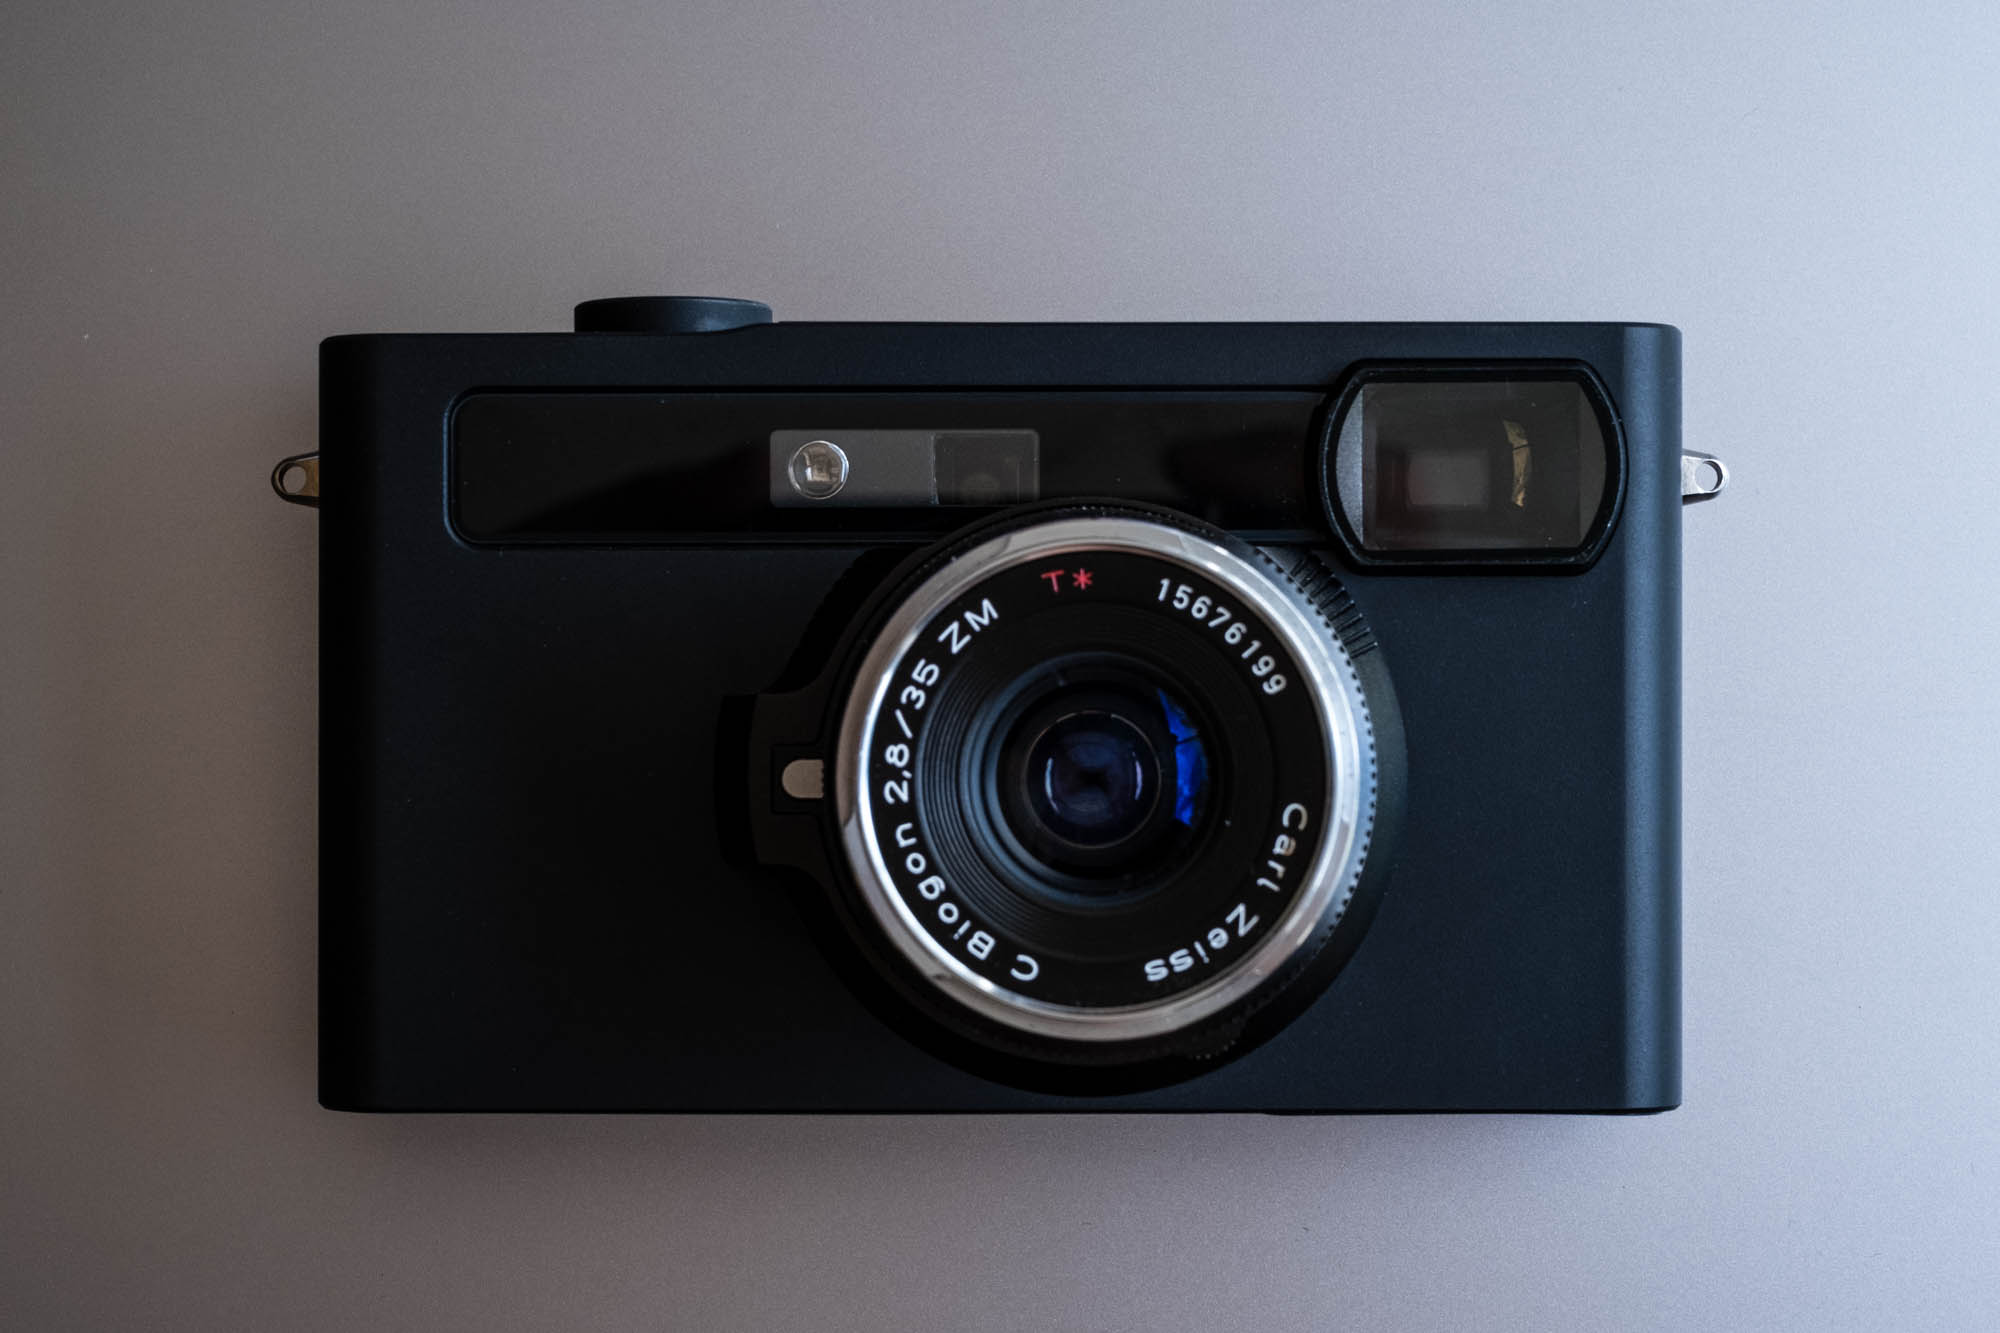 Pixii Connected Digital Rangefinder